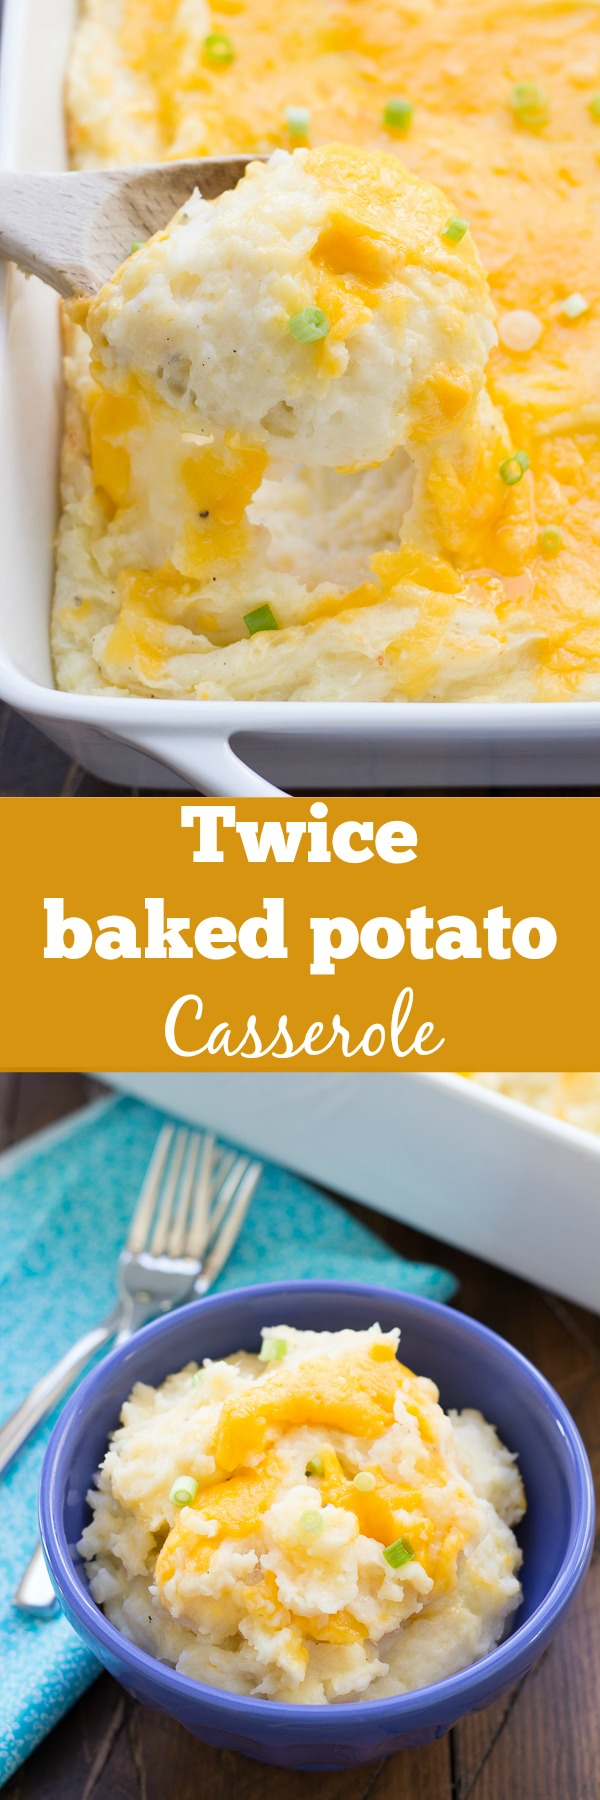 Cheesy, creamy Twice Baked Potato Casserole. So yummy for your holiday meal!